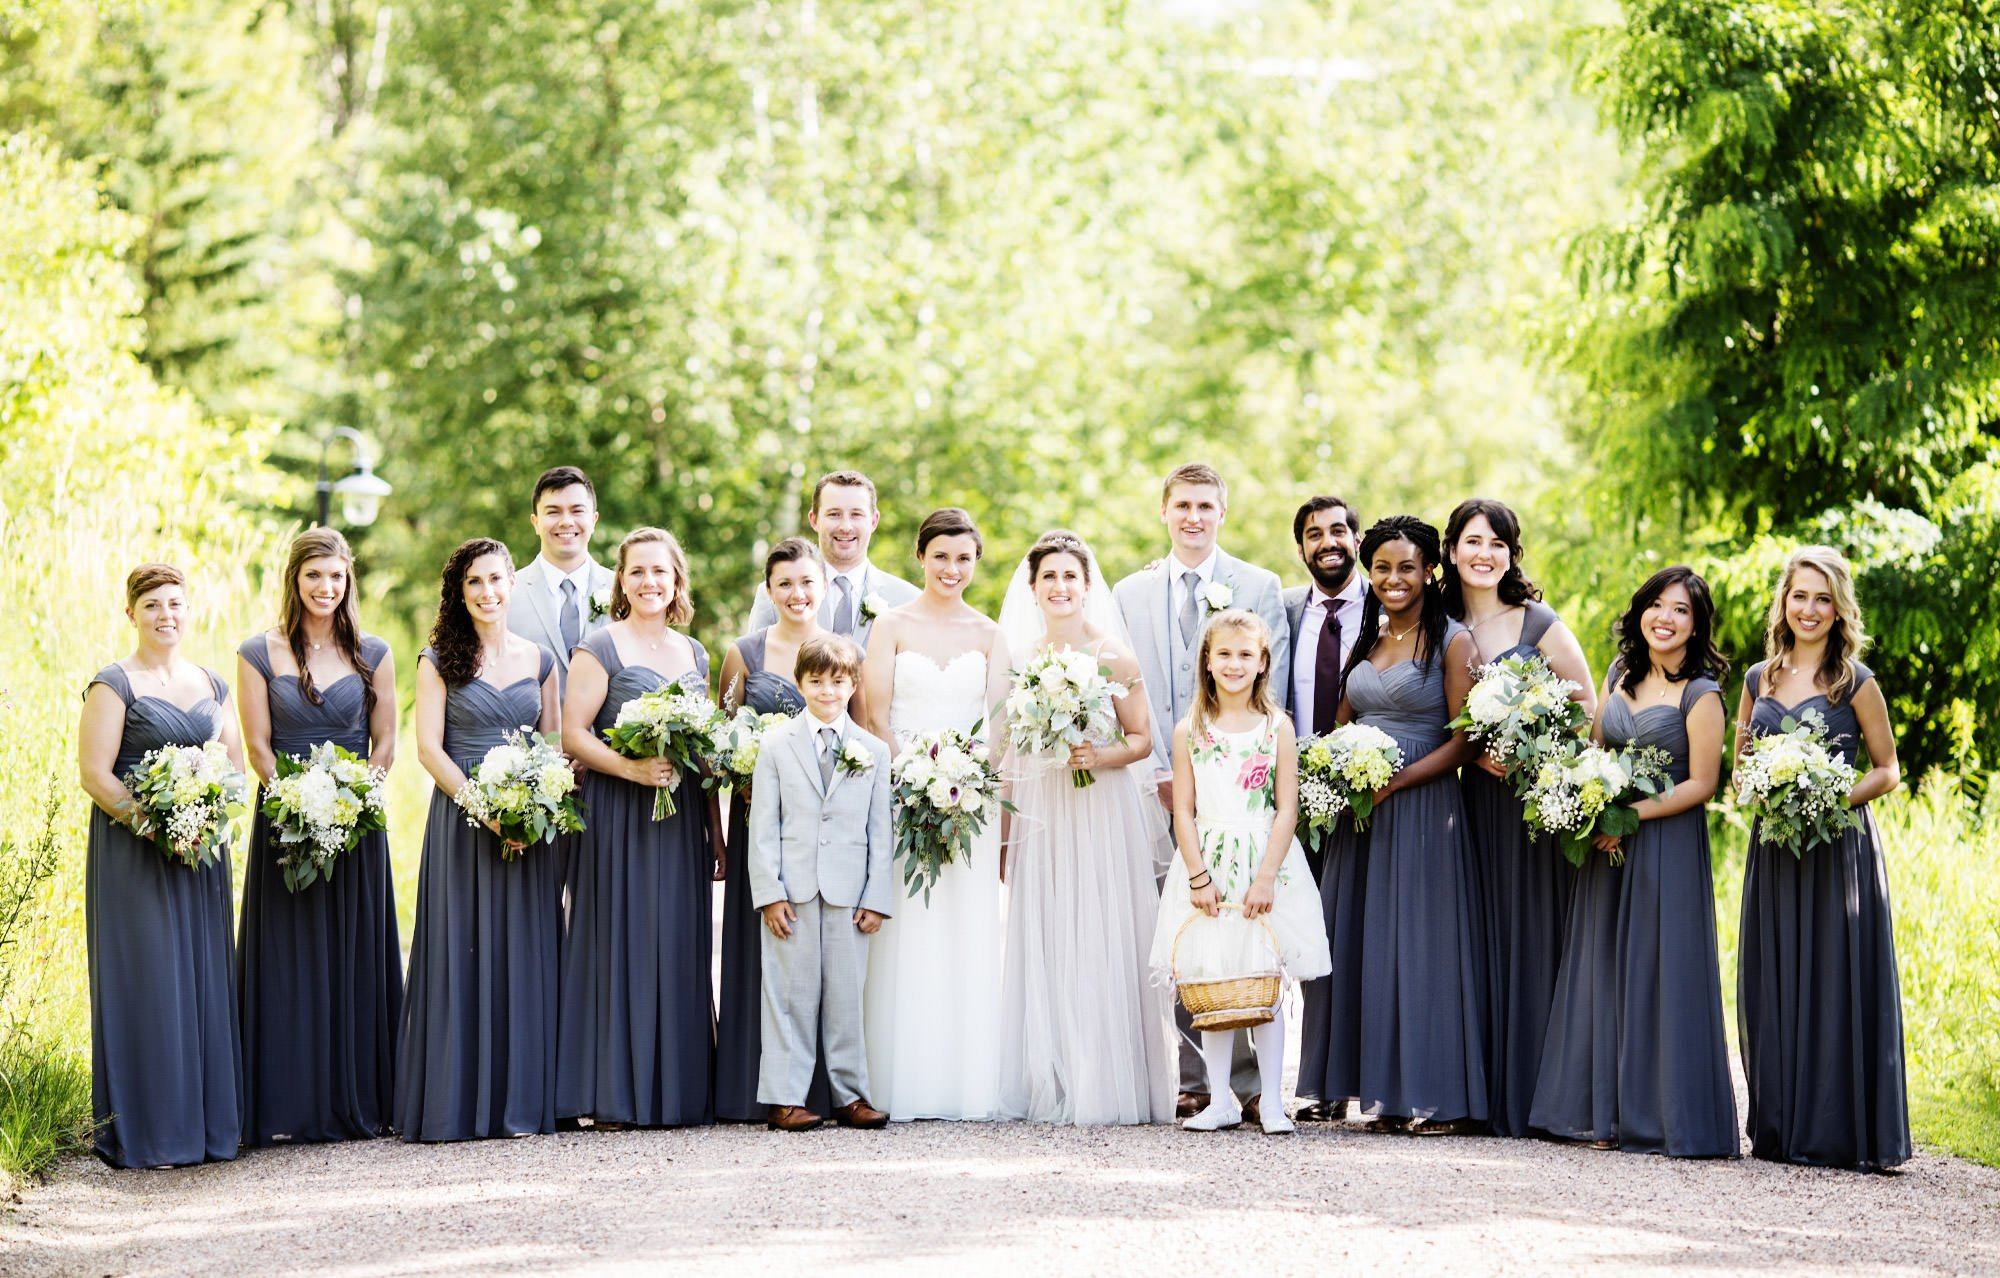 A portrait of the wedding party.